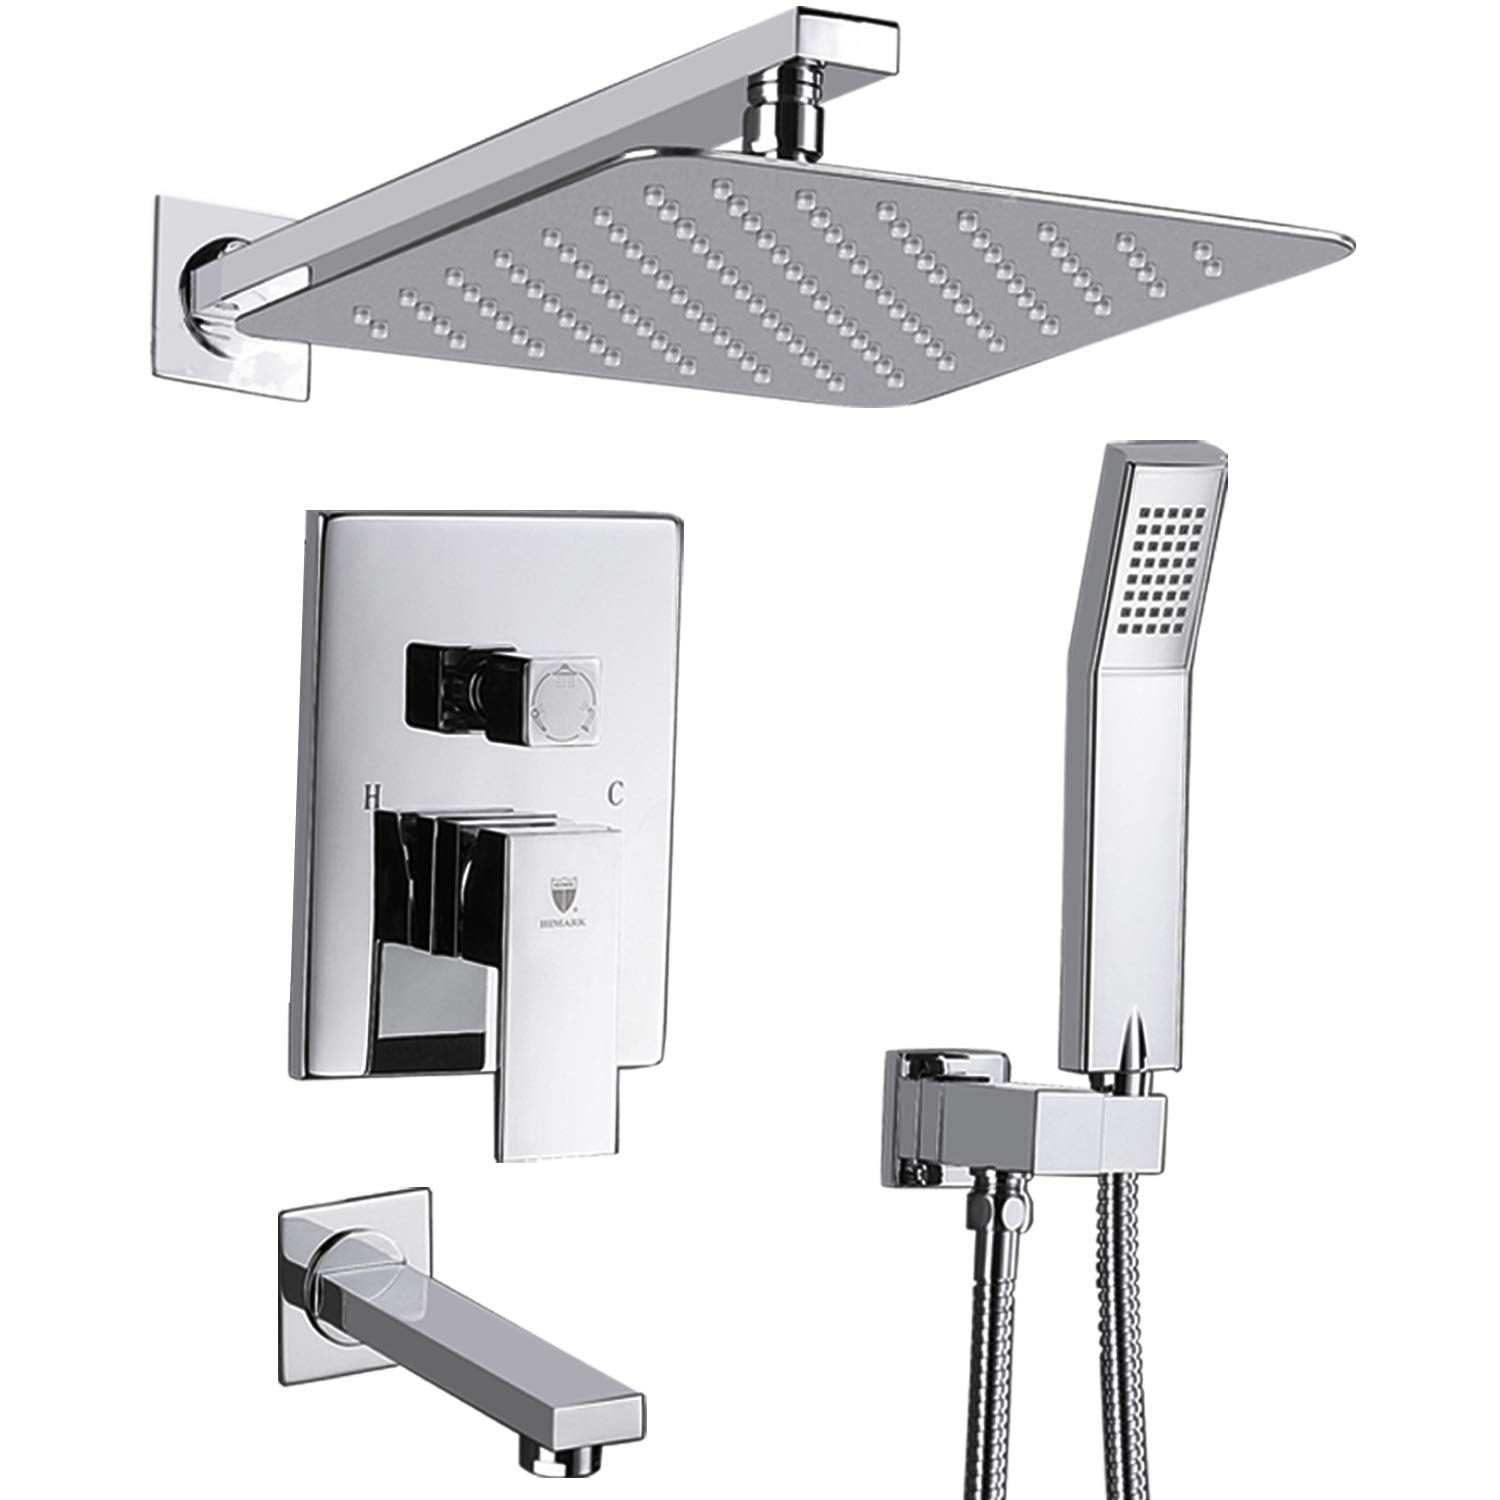 Shower Faucet.Himk Shower System Shower Faucet Set With Tub Spout And 10 Rain Shower Head Wall Mounted Shower Set Contain Shower Faucet Rough In Valve Chrome